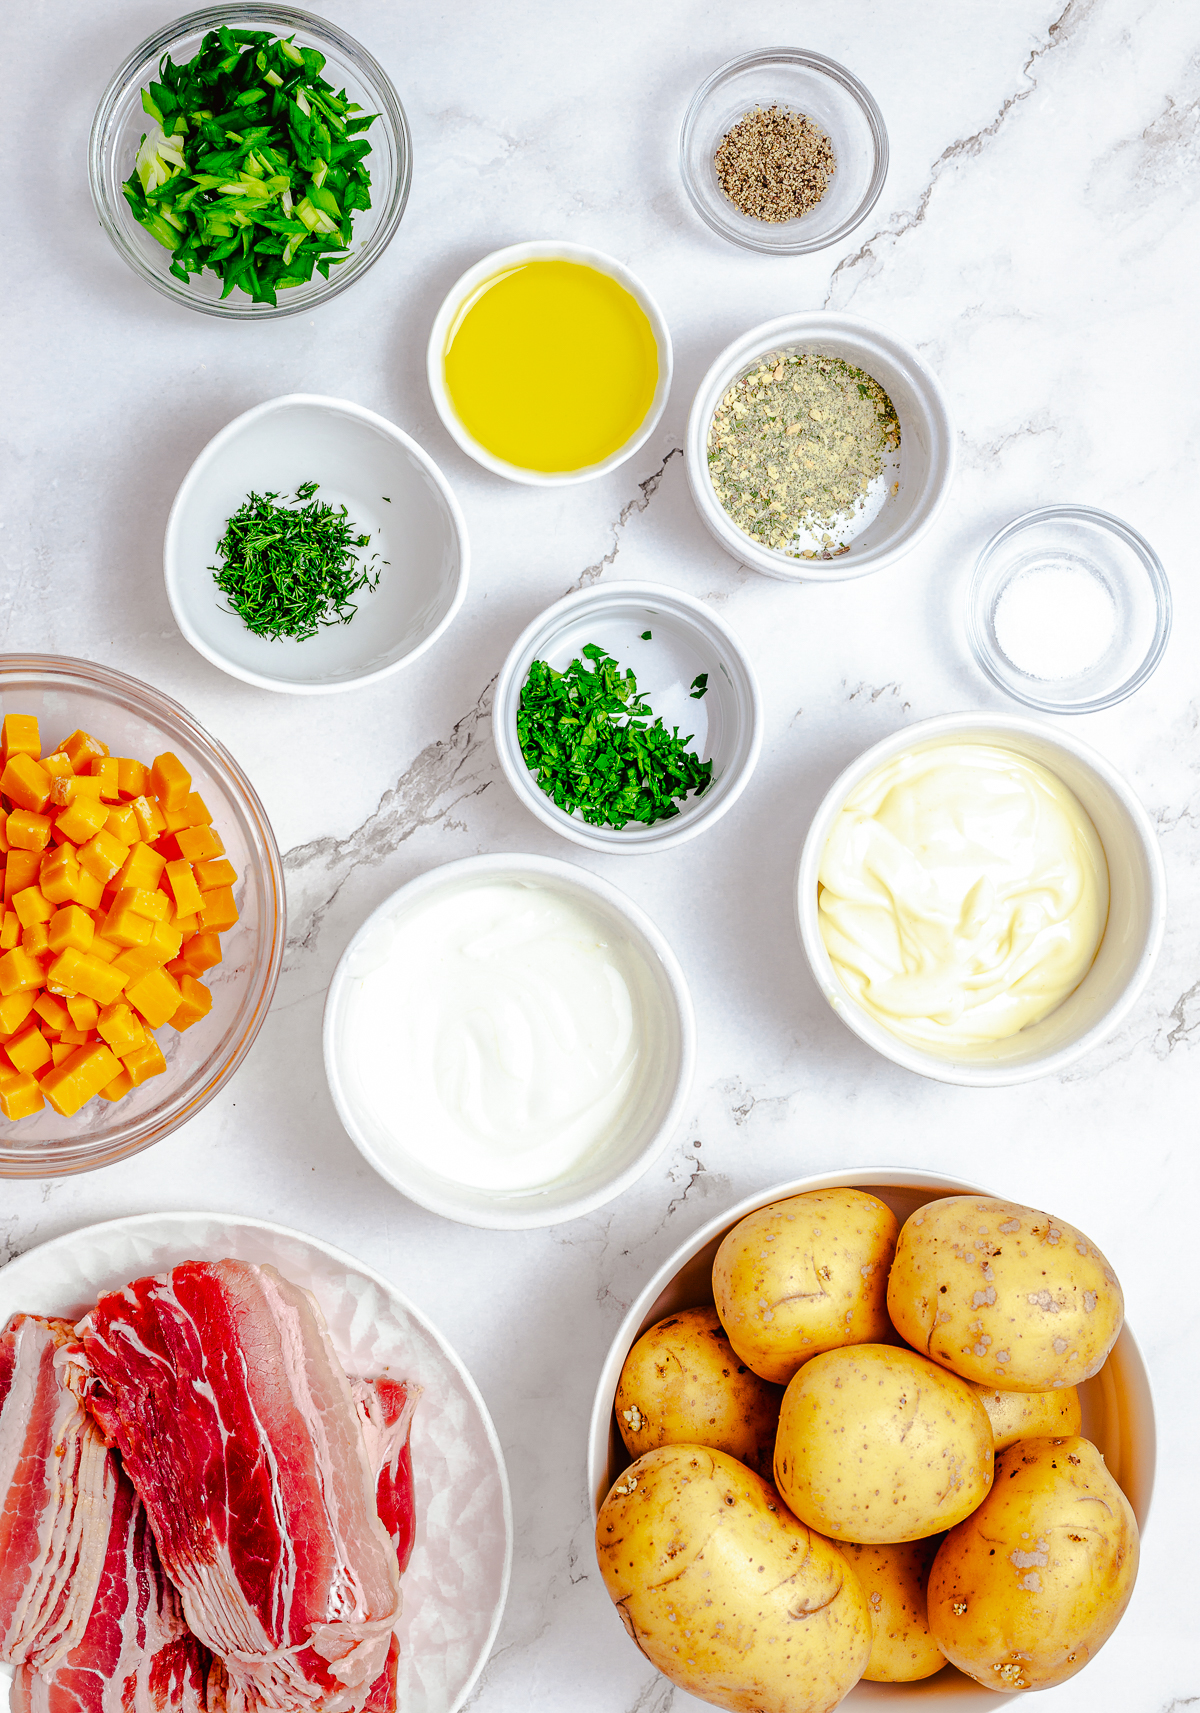 Ingredients needed to make Bacon Ranch Potato Salad